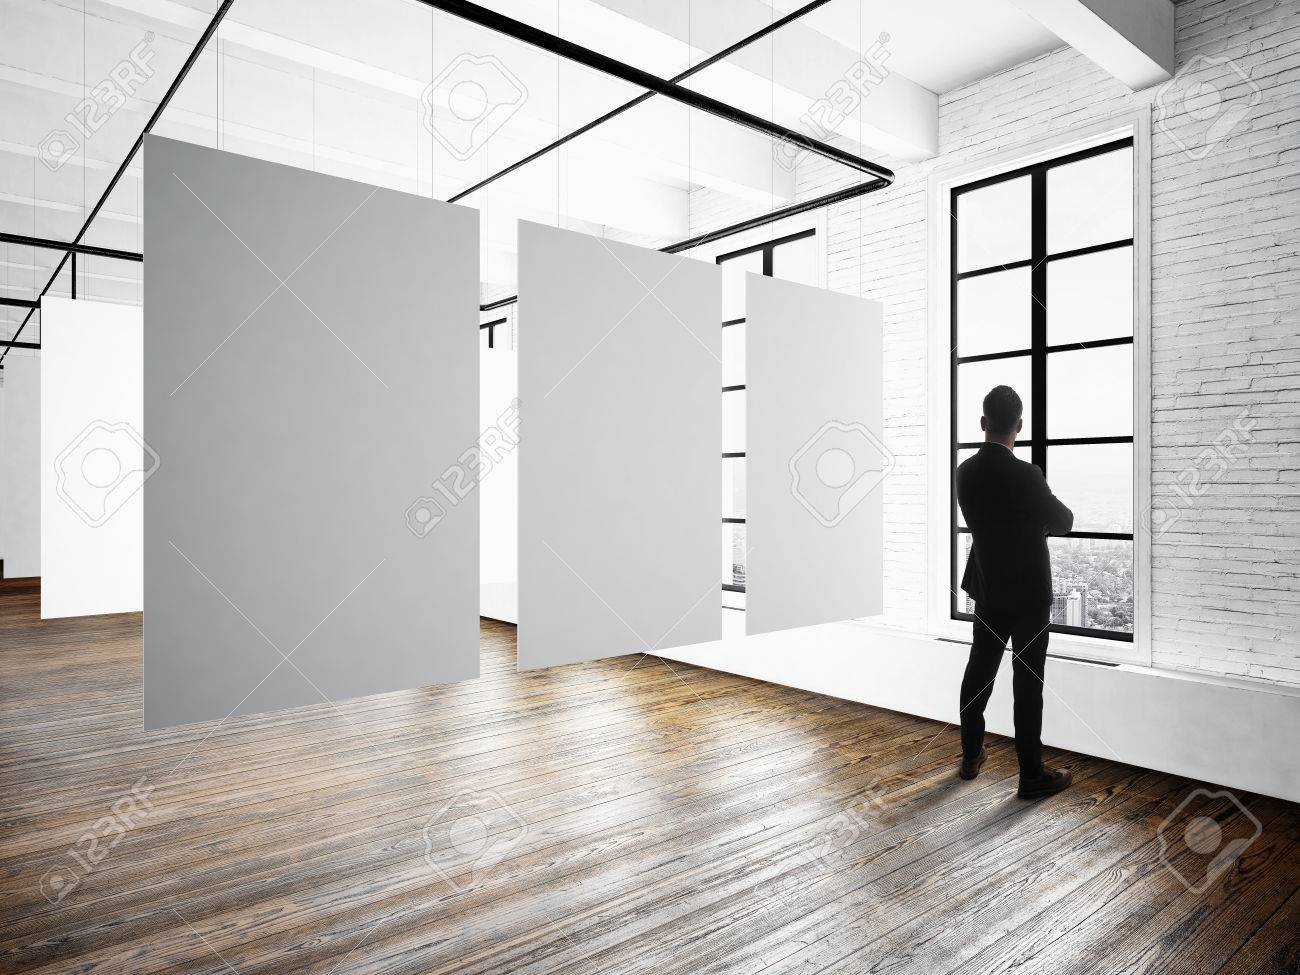 Businessman Modern museum expo loft interior.Open space studio.Empty white canvas hanging.Wood floor,bricks wall,panoramic windows.Blank frames ready for bussiness information.Horizontal mockup - 58177524